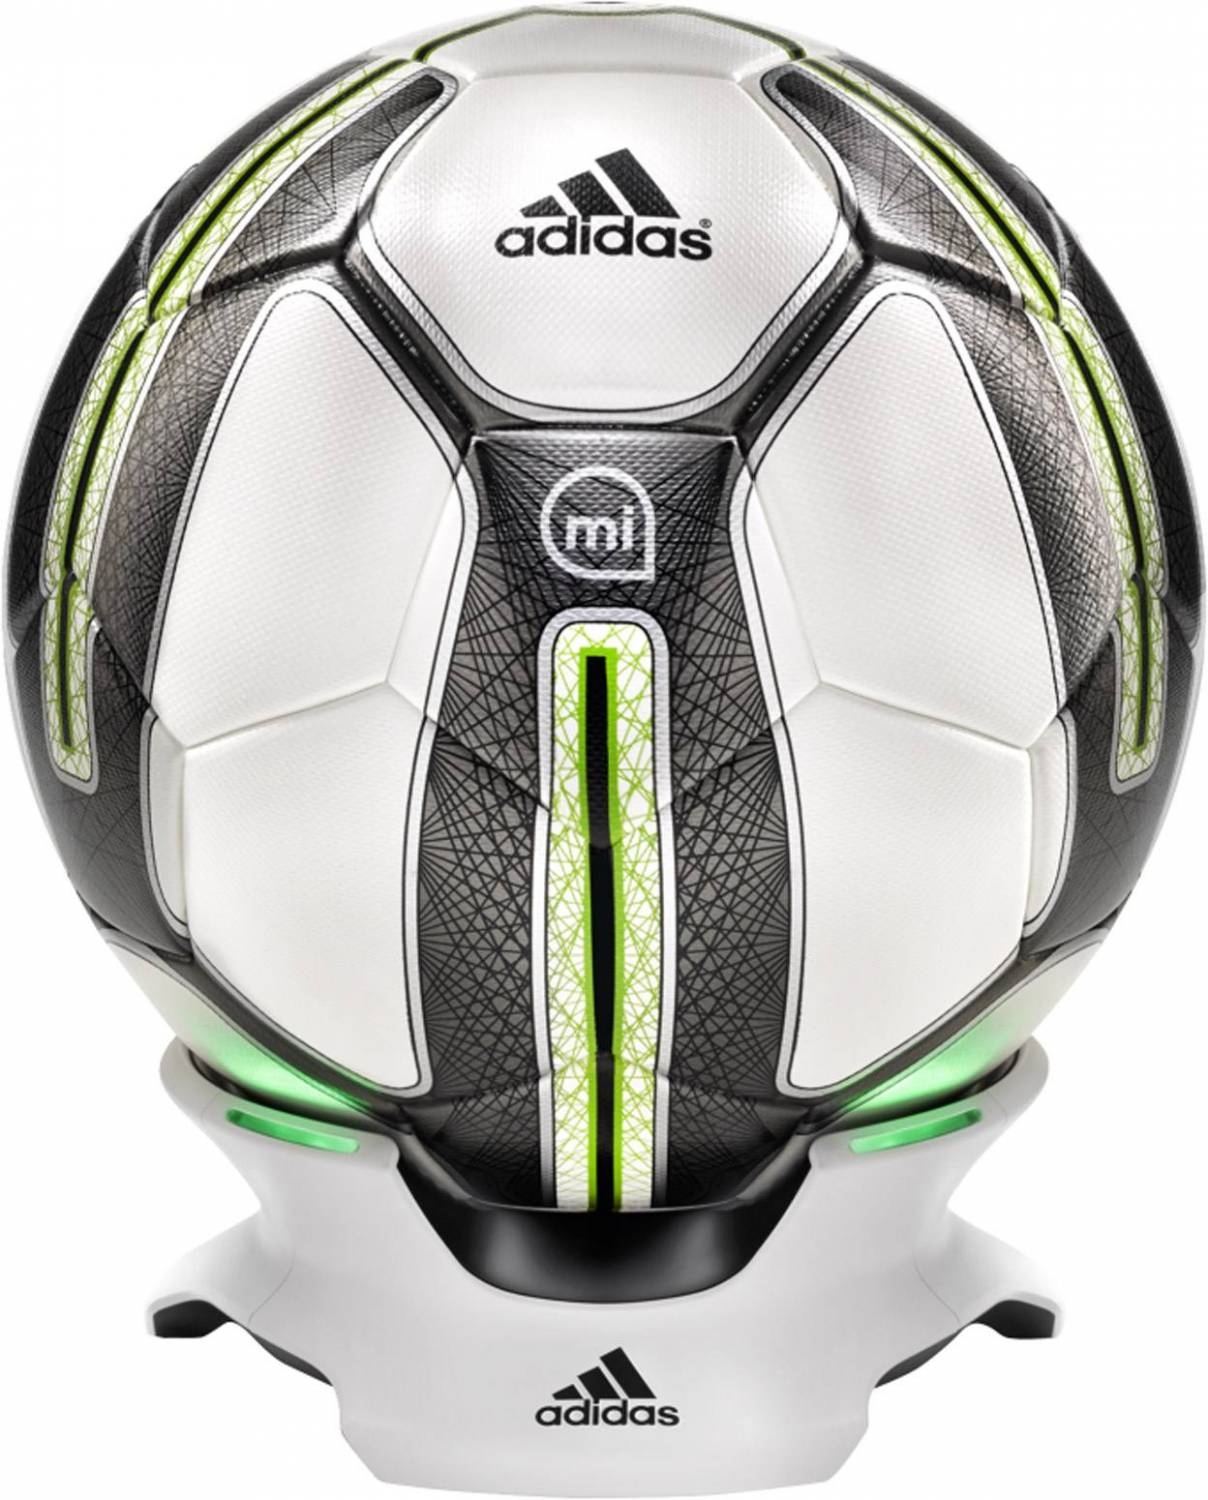 adidas-micoach-smart-fu-szlig-ball-gr-ouml-szlig-e-5-white-multicolor-